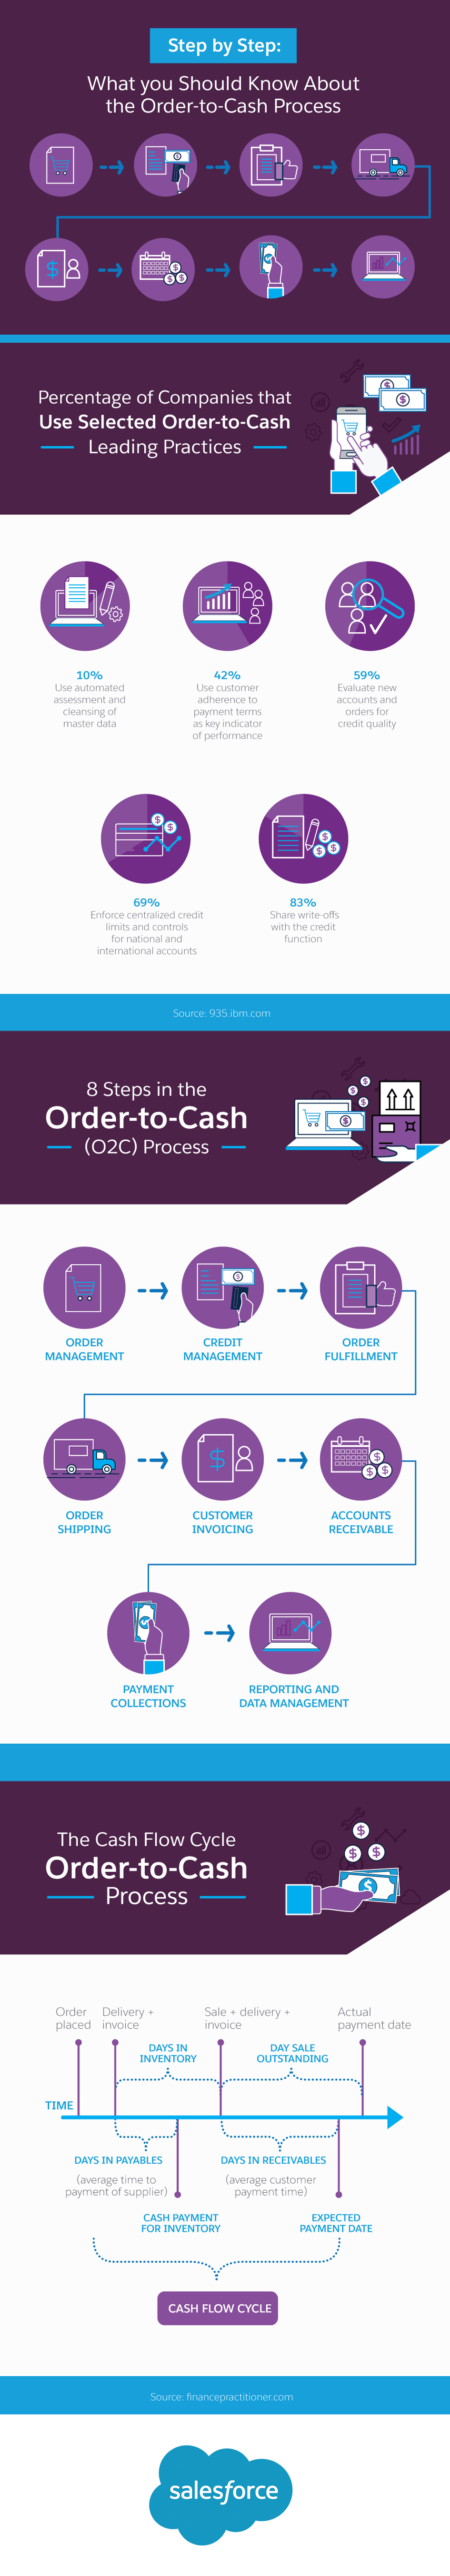 Step by Step: What you Should Know About the Order-to-Cash Process